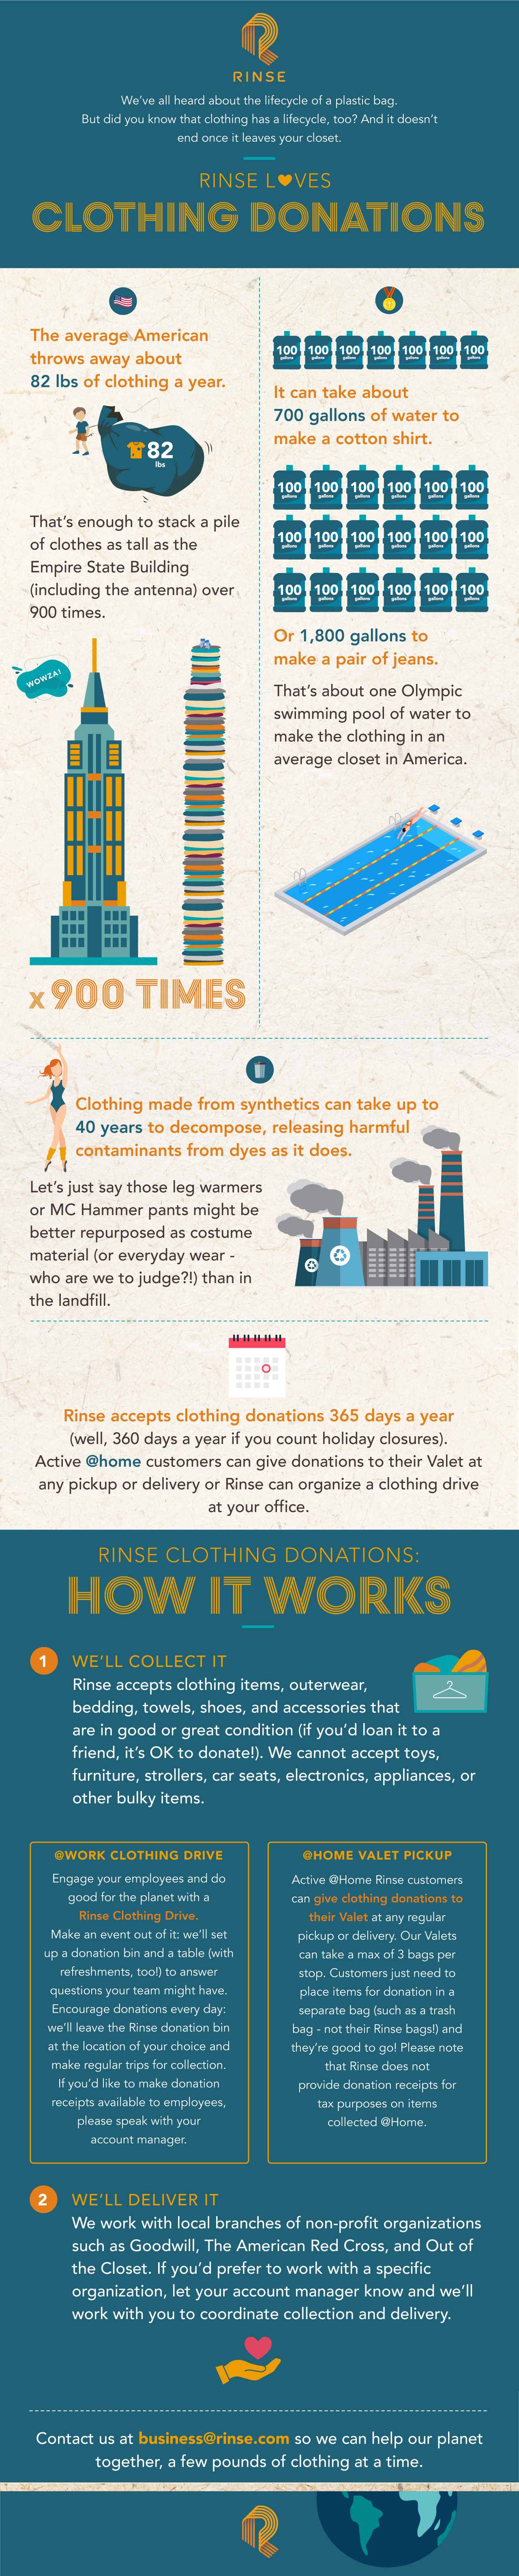 Rinse-for-Business-Clothing-Donation.jpg